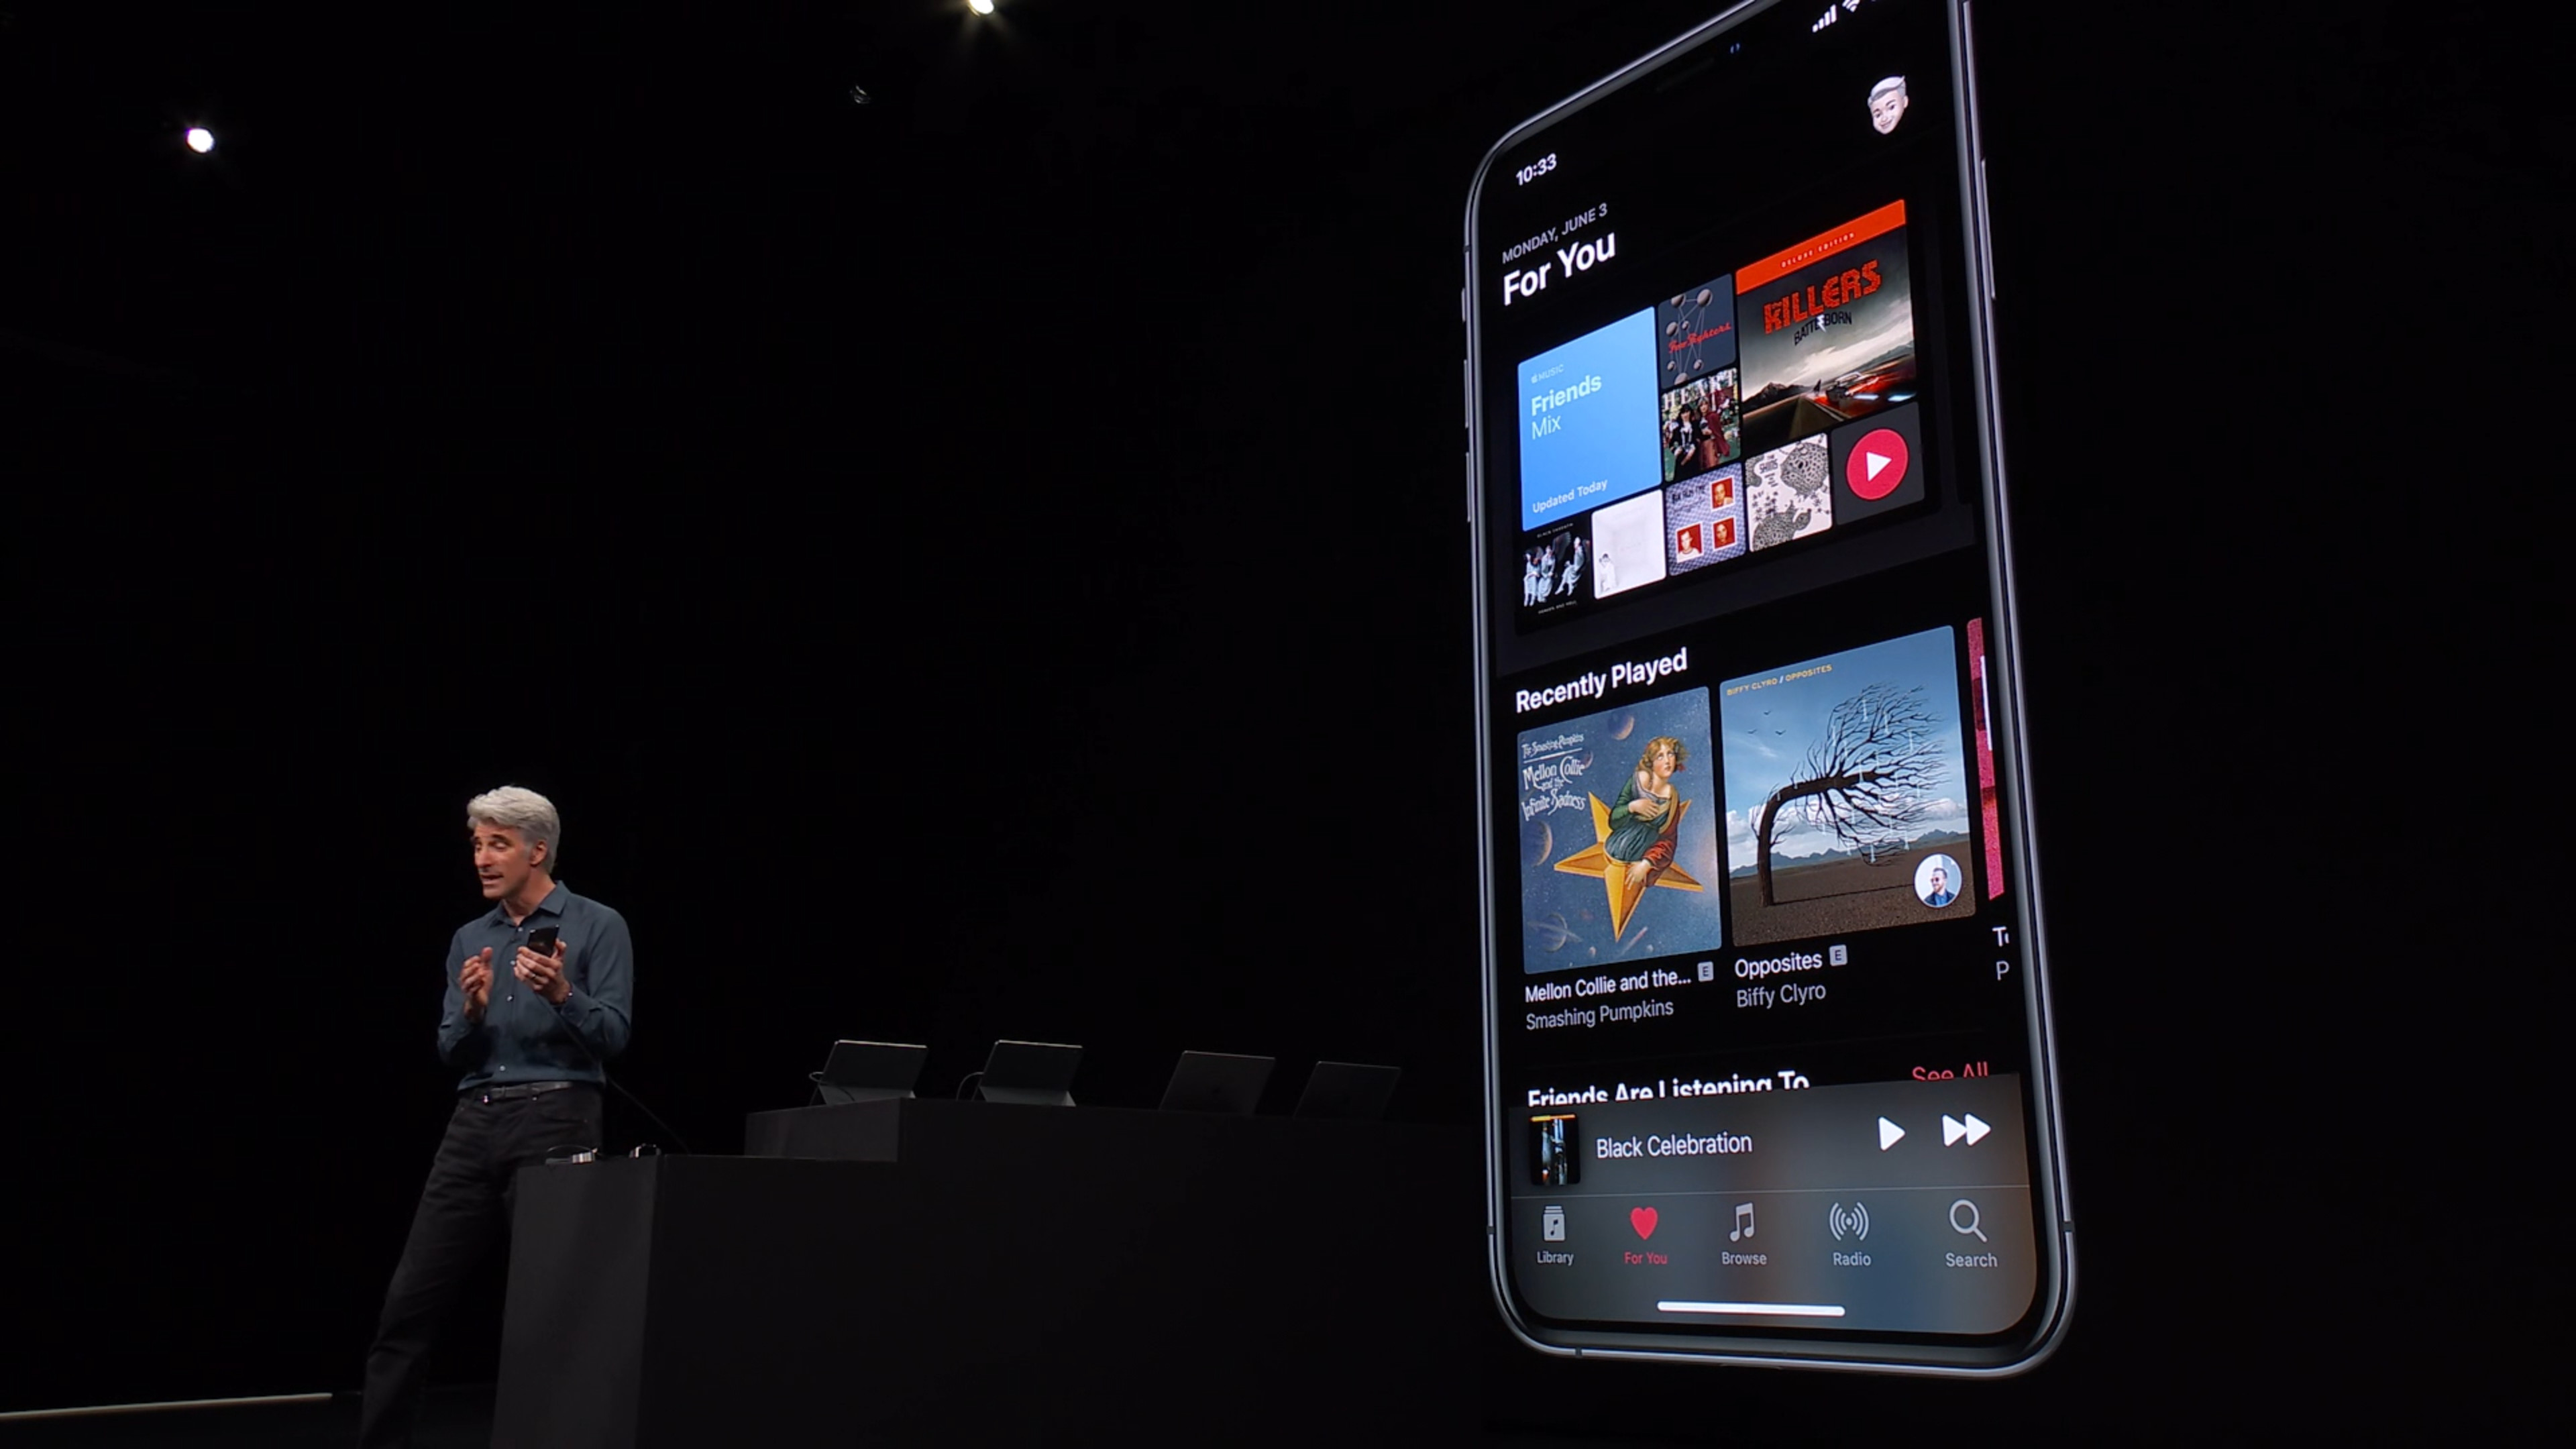 Apple announces iOS 13, with dark mode, new privacy